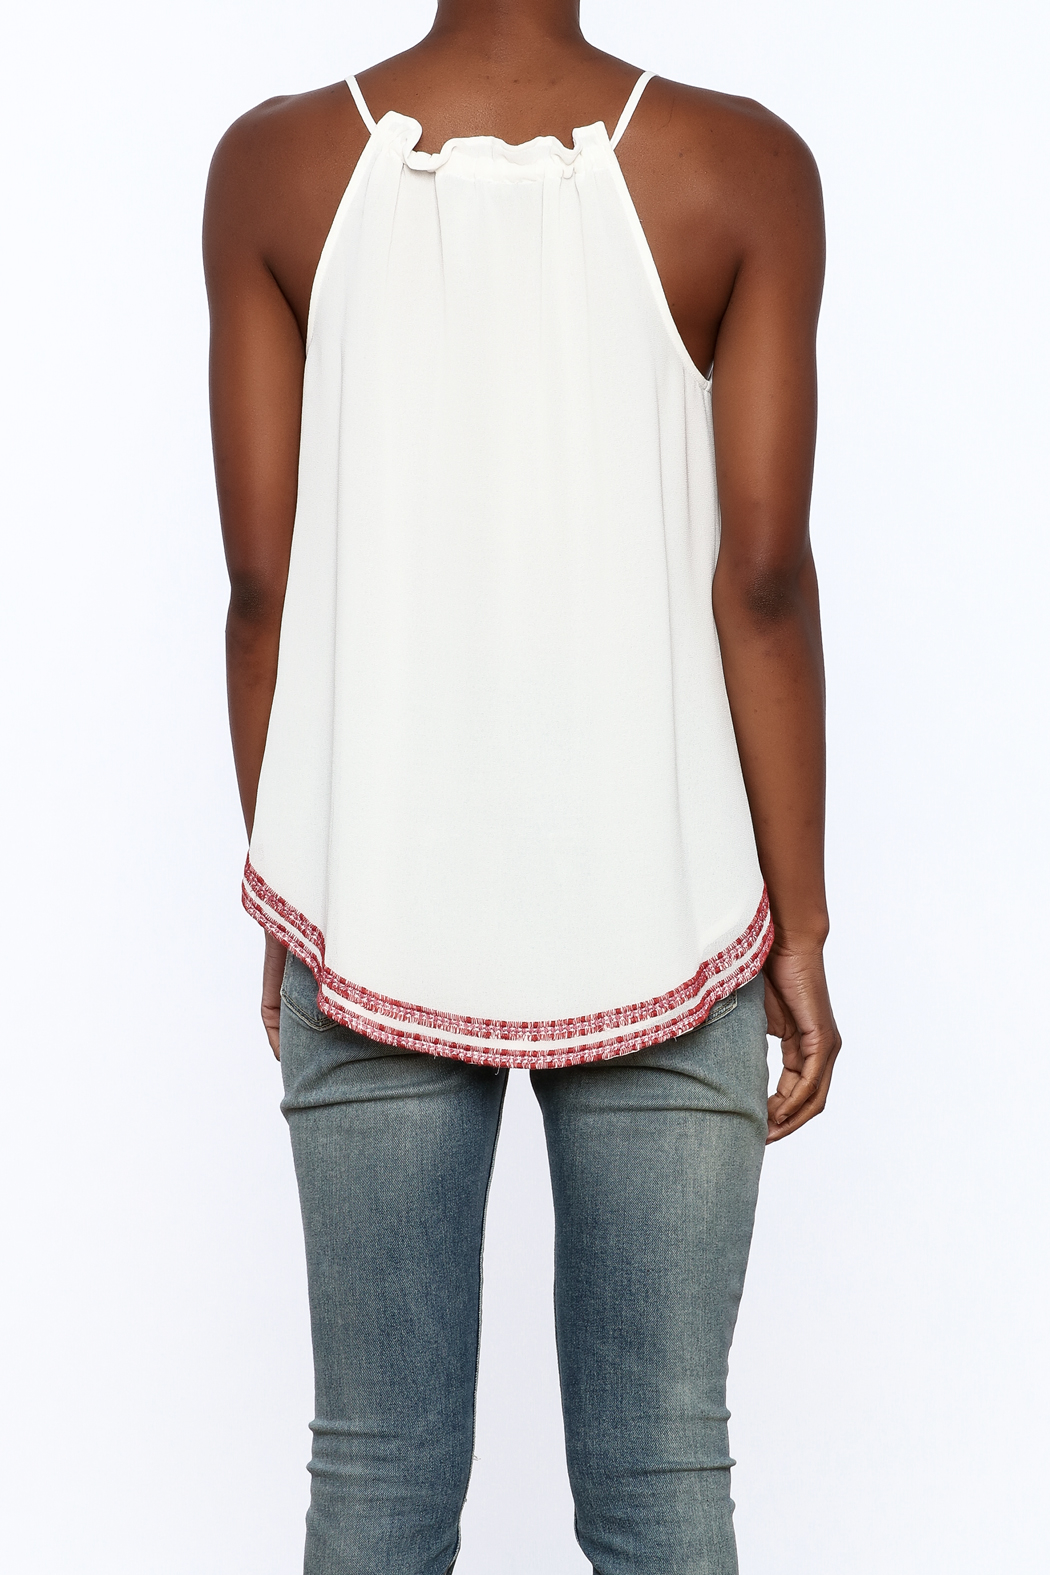 Matty M Embroidered Keyhole Tank - Back Cropped Image